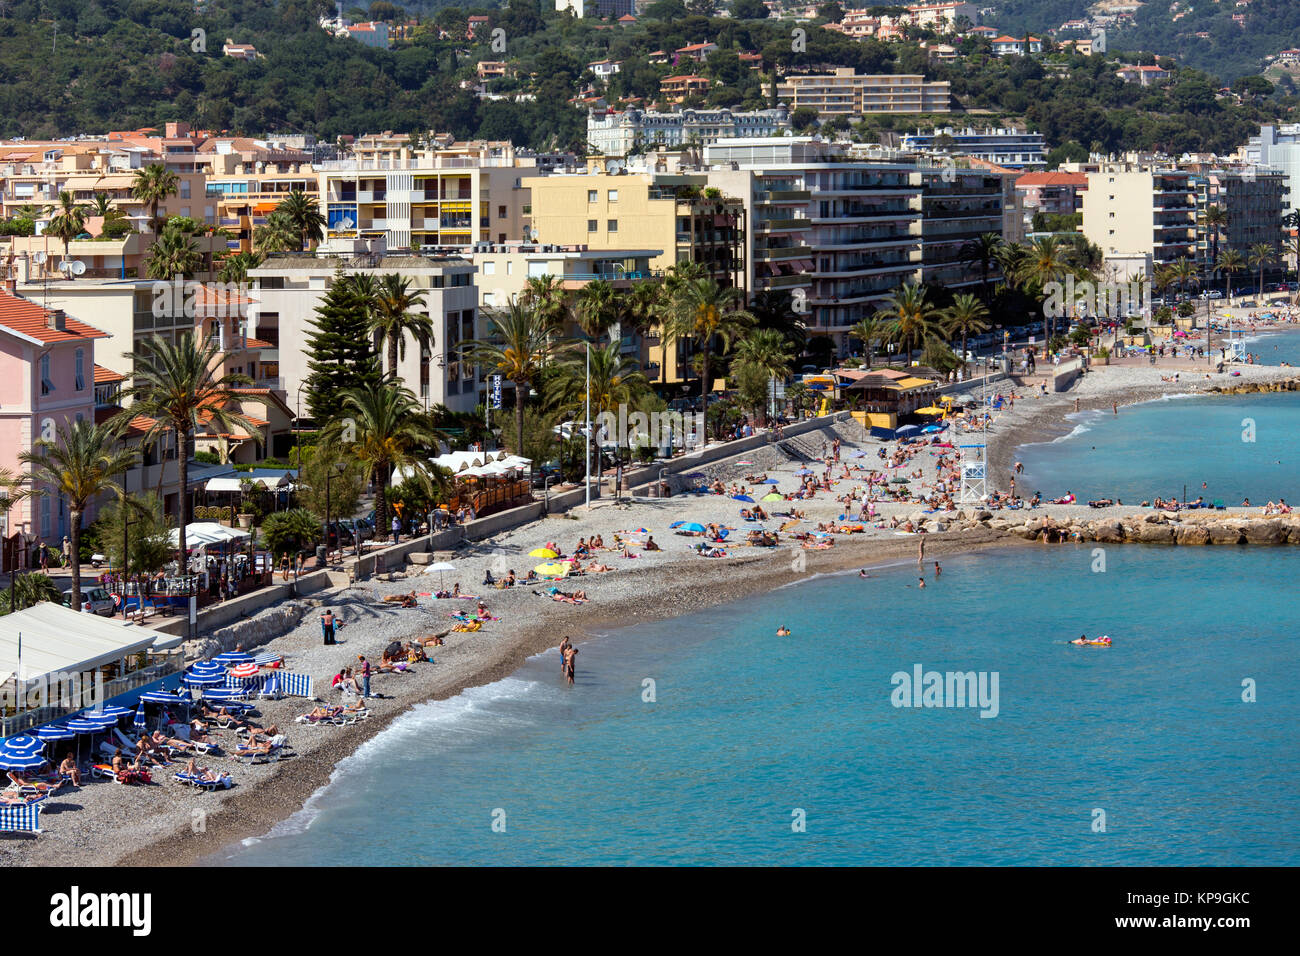 The Mediterranean resort of Cap Martin on the French Riviera near Monaco, in the Cote d'Azur region of the South - Stock Image